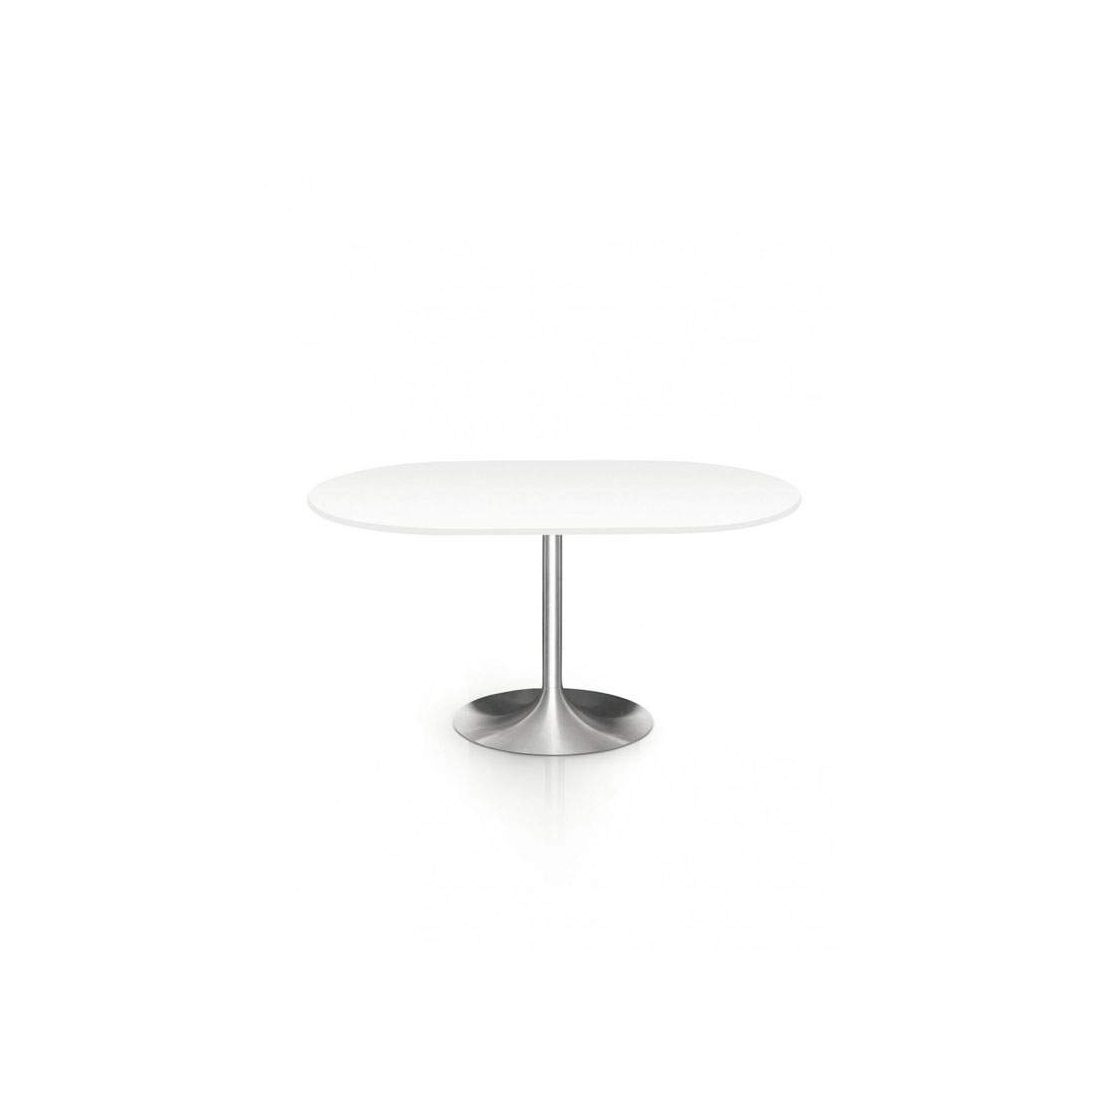 Table ronde salle a manger joe myyour zendart design - Table ronde 6 personnes ...